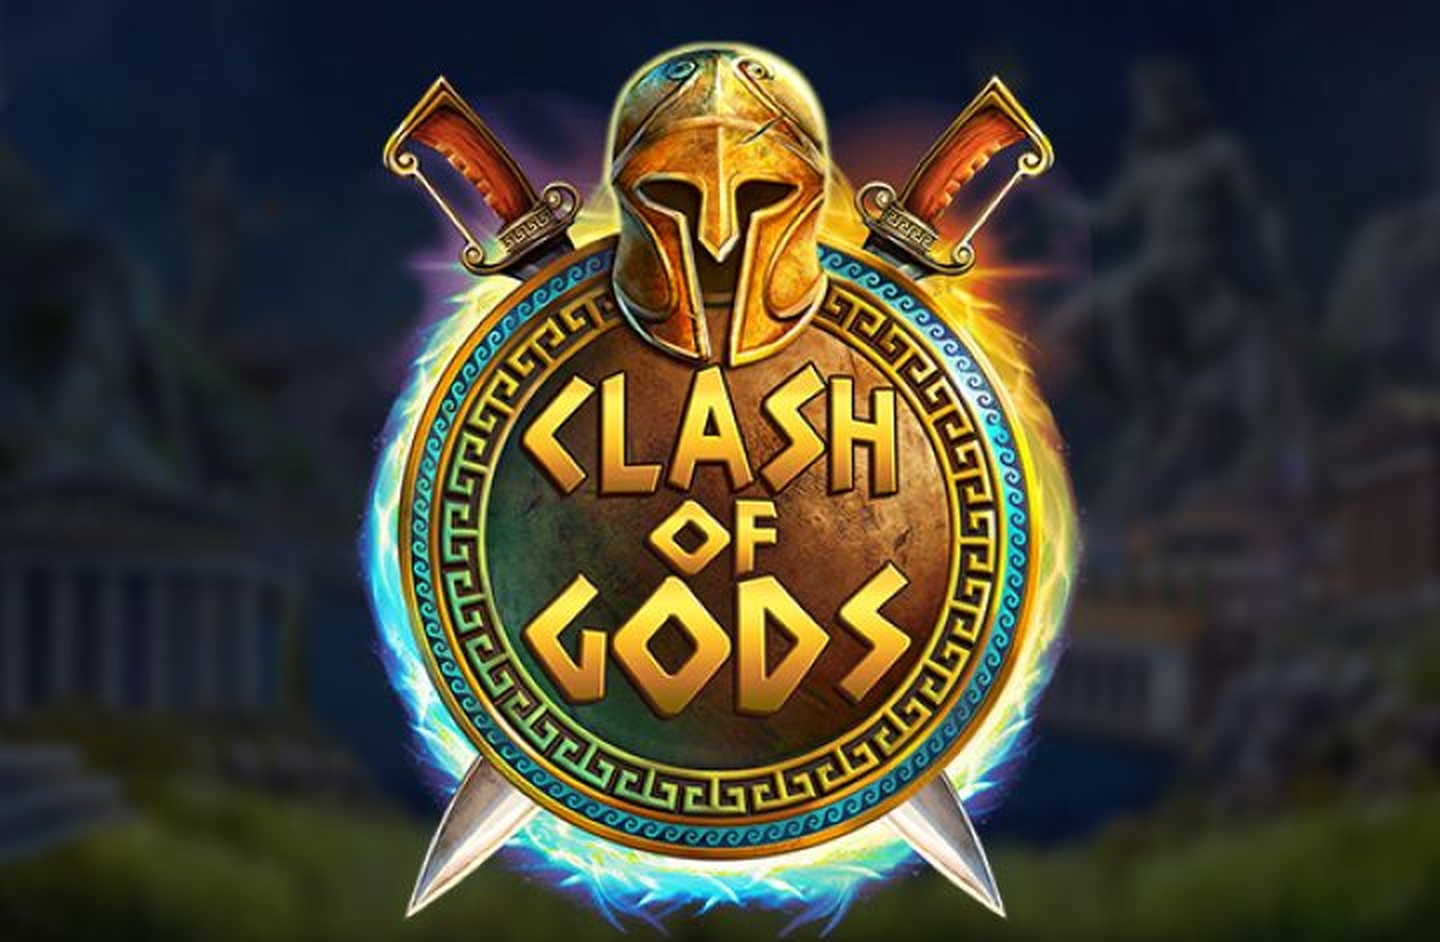 The Clash of Gods Online Slot Demo Game by Fugaso